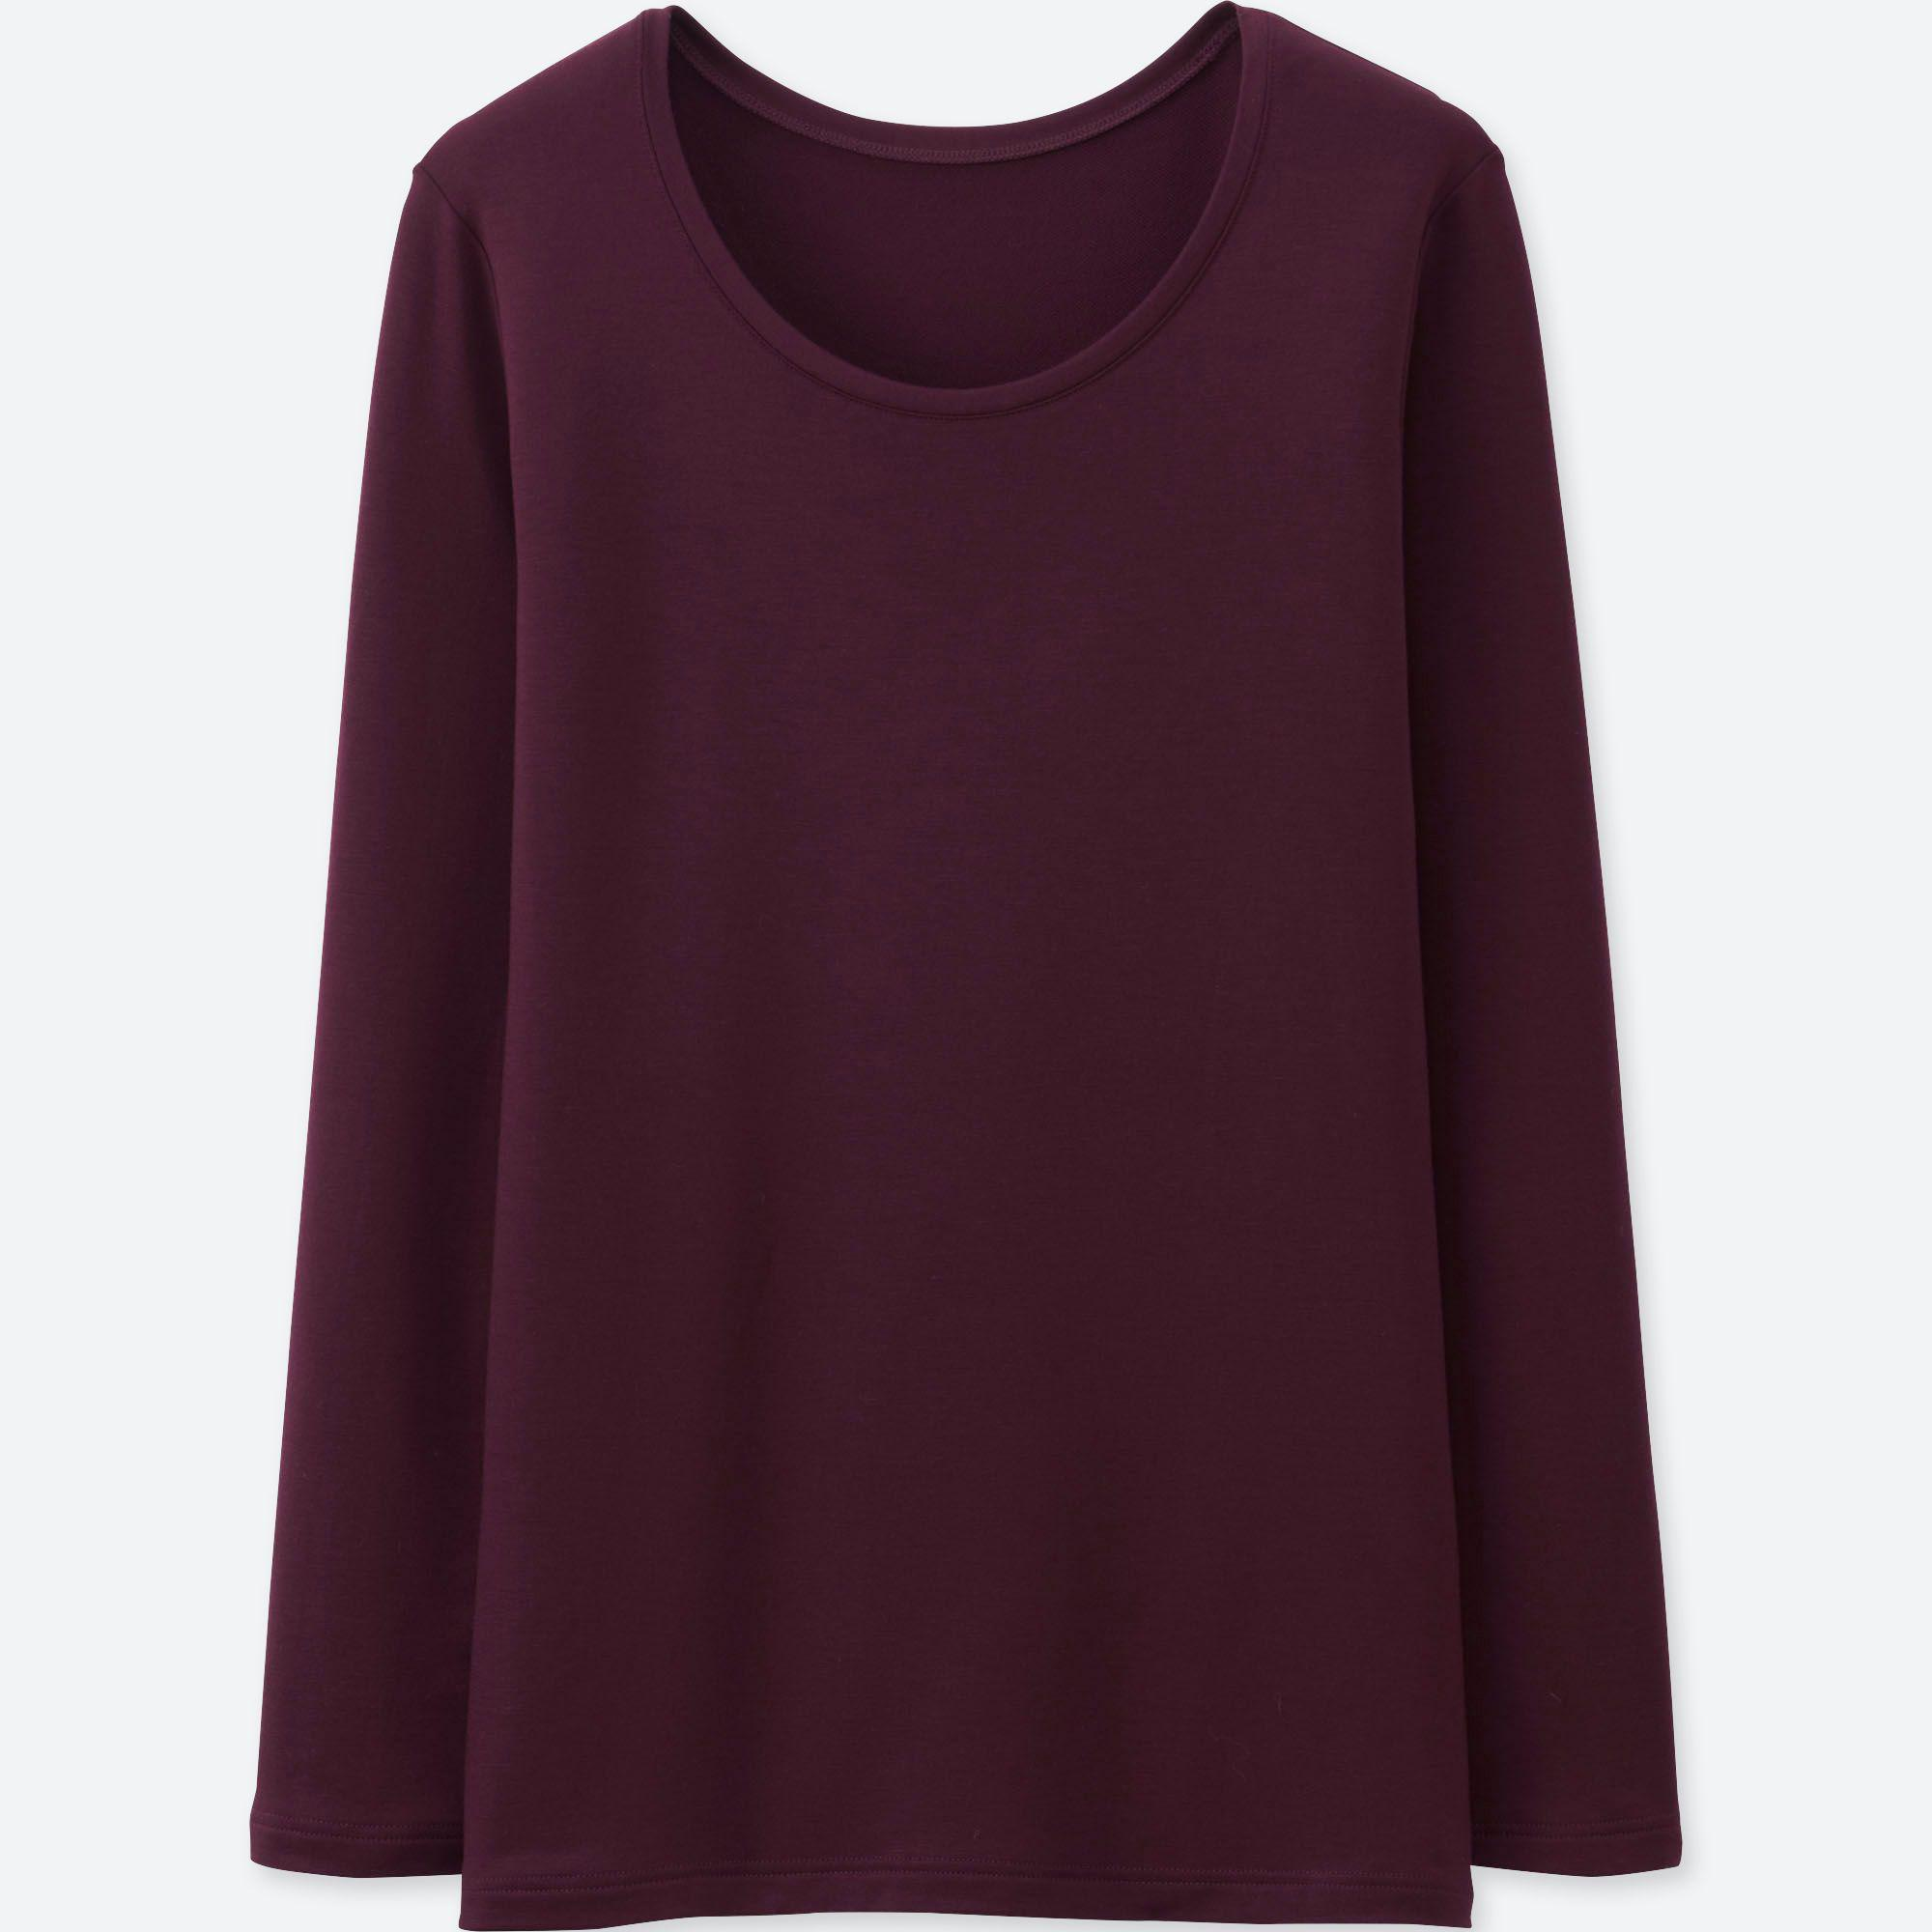 8712f80abb6d Uniqlo Heattech Extra Warm Crew Neck Long Sleeved T-shirt in Purple ...